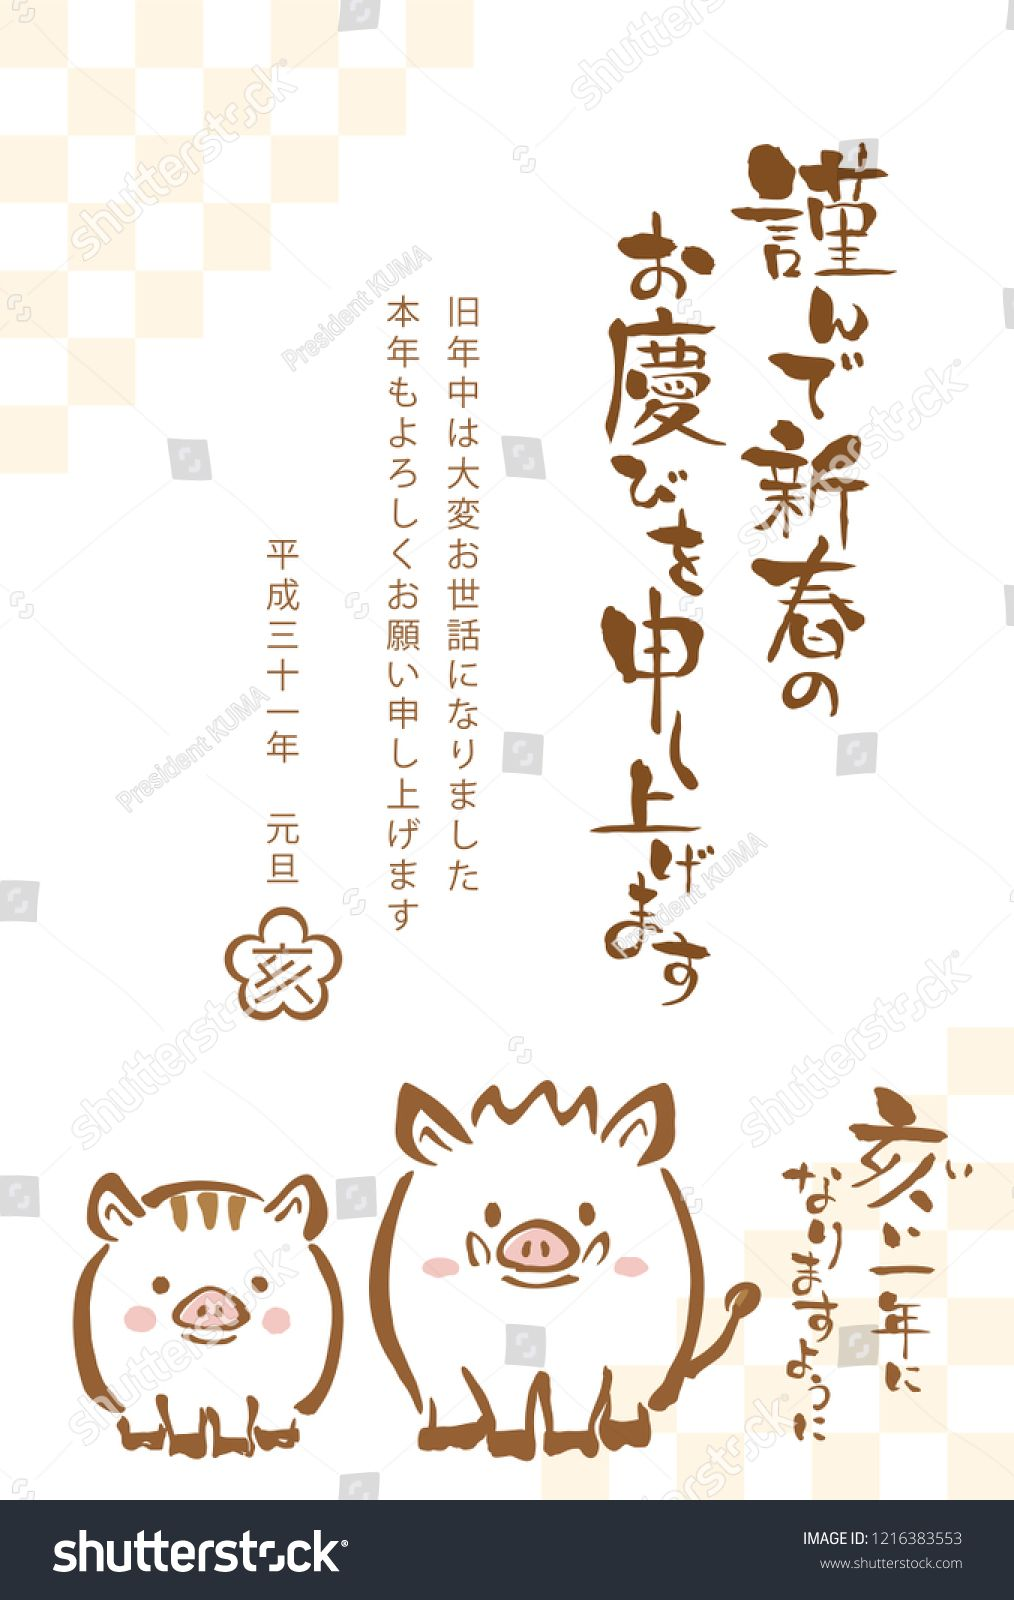 Japanese New Year S Card In 2019 In Japanese It Is Written Happy New Year Thank You Again New Year Card Japanese New Year Vintage Business Cards Template